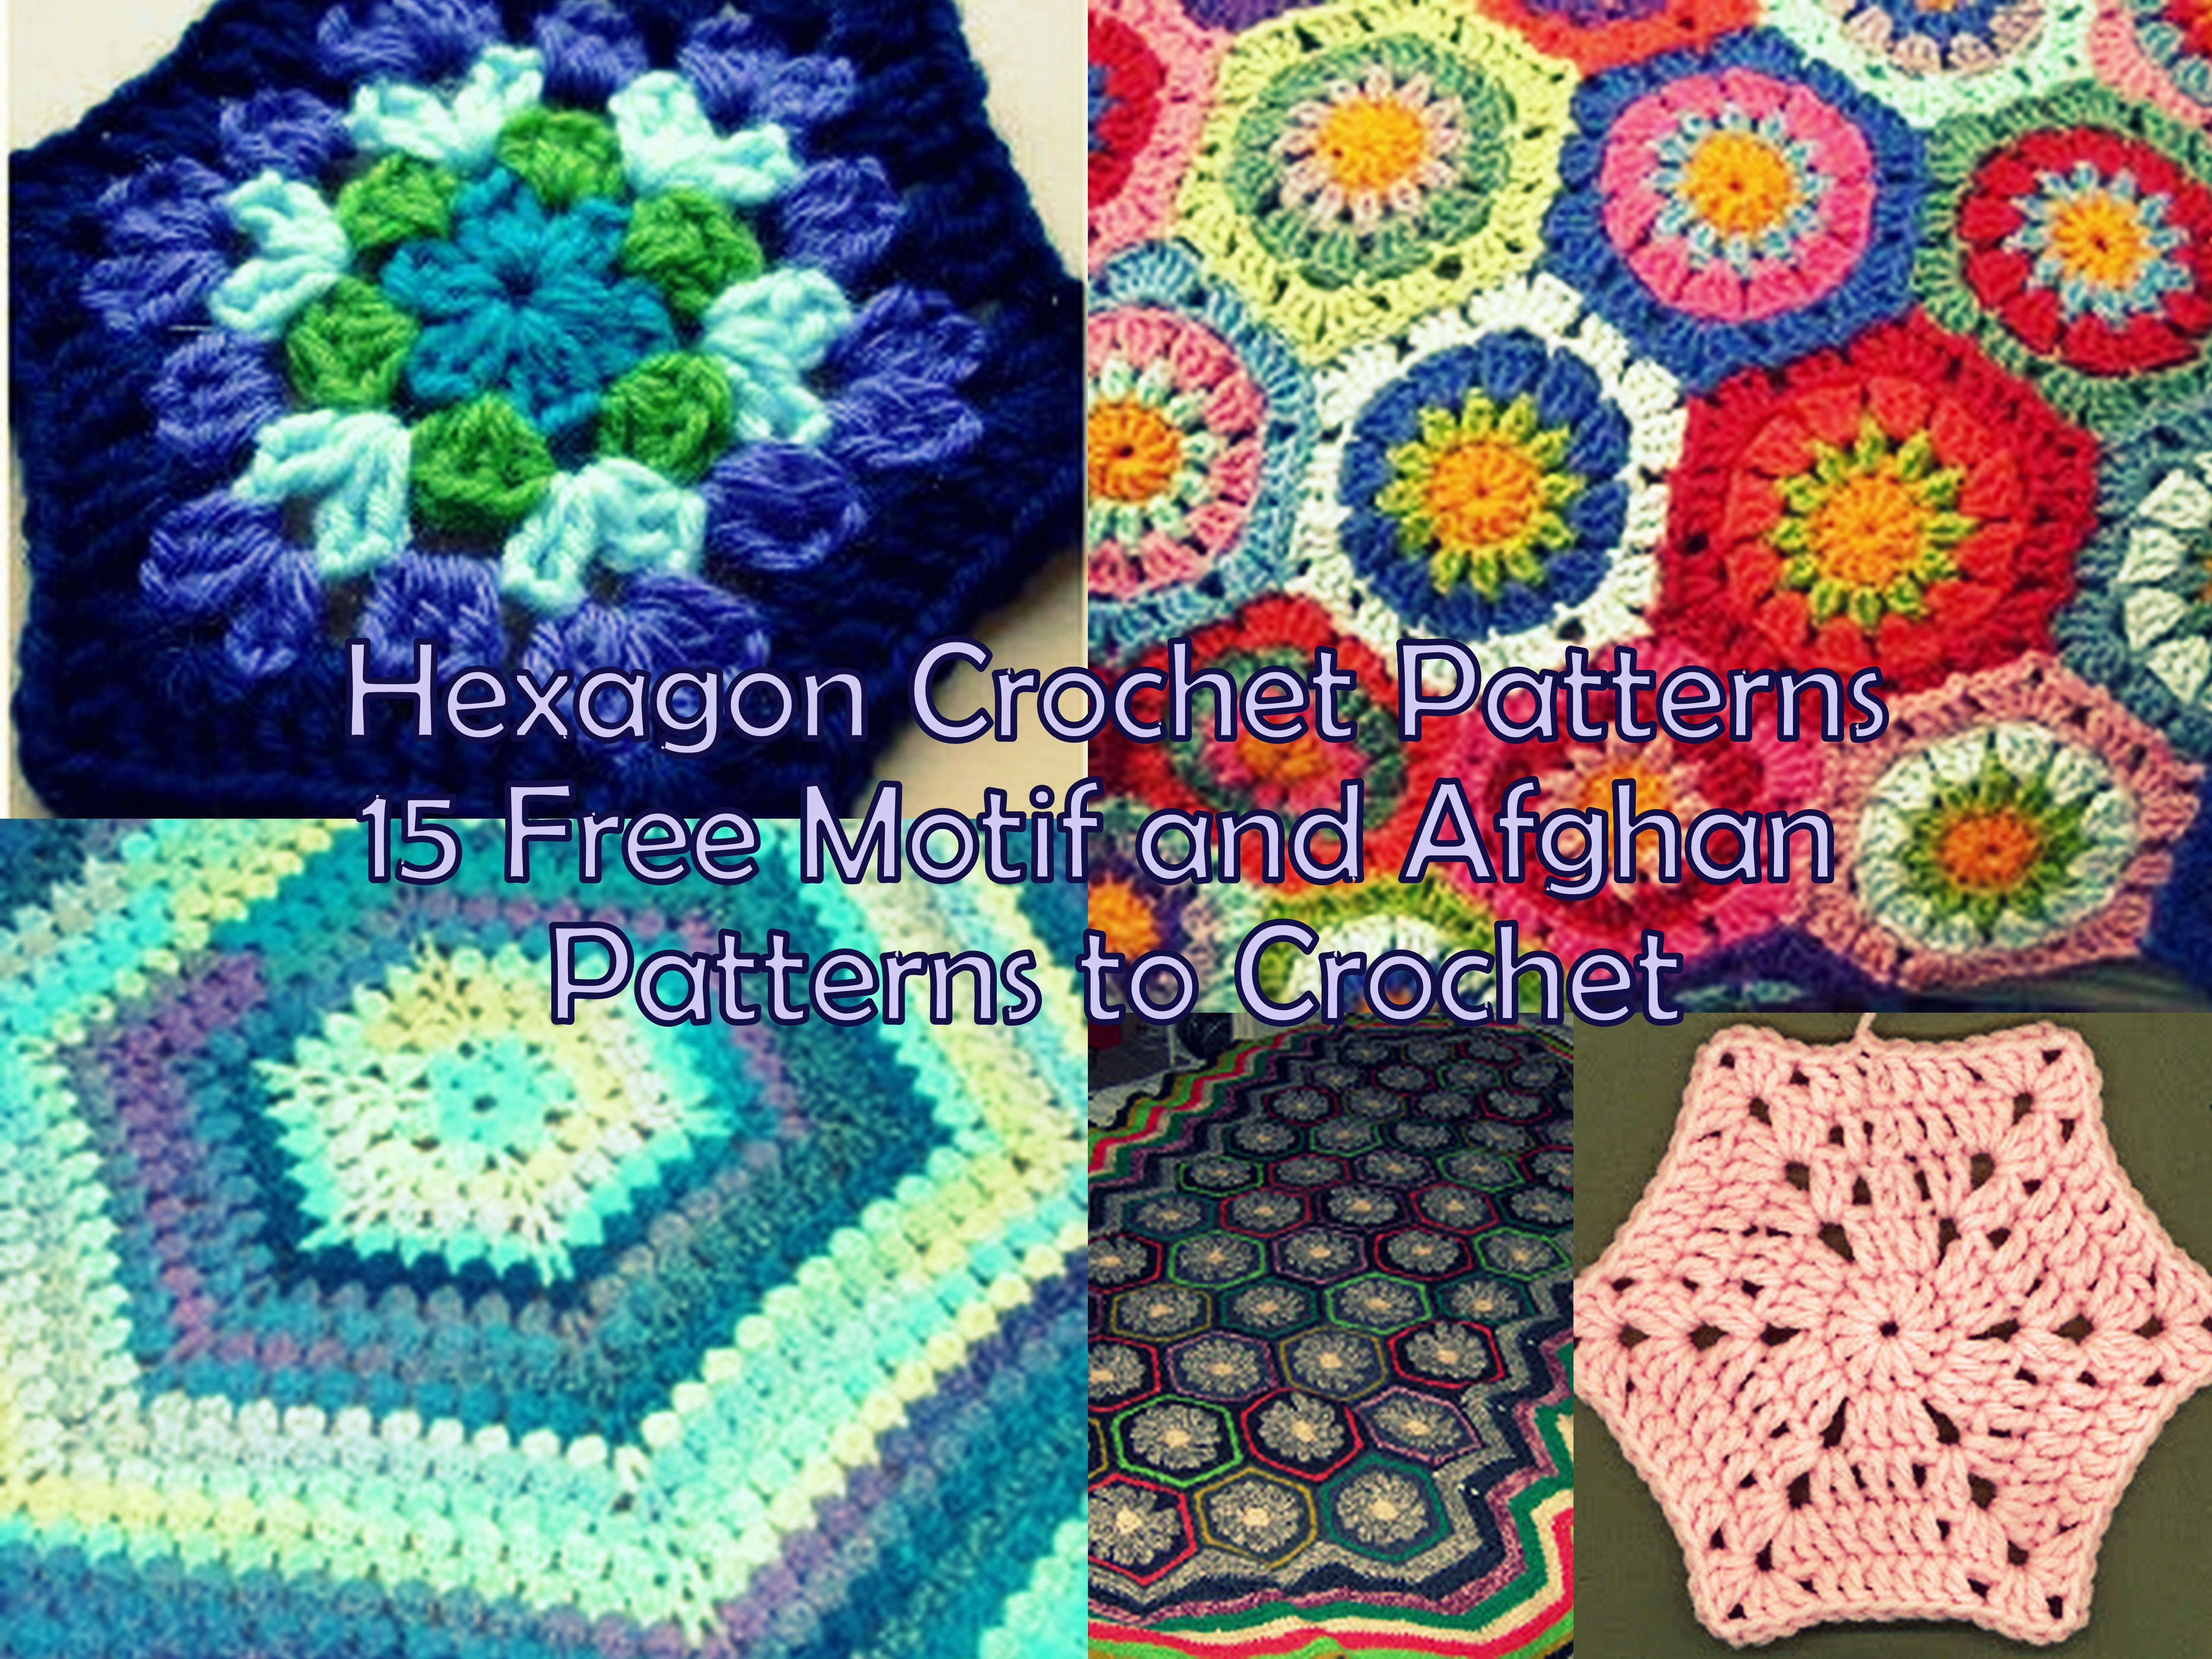 Hexagon crochet patterns 15 free motif and afghan patterns to hexagon crochet patterns 15 free motif and afghan patterns to crochet bankloansurffo Image collections